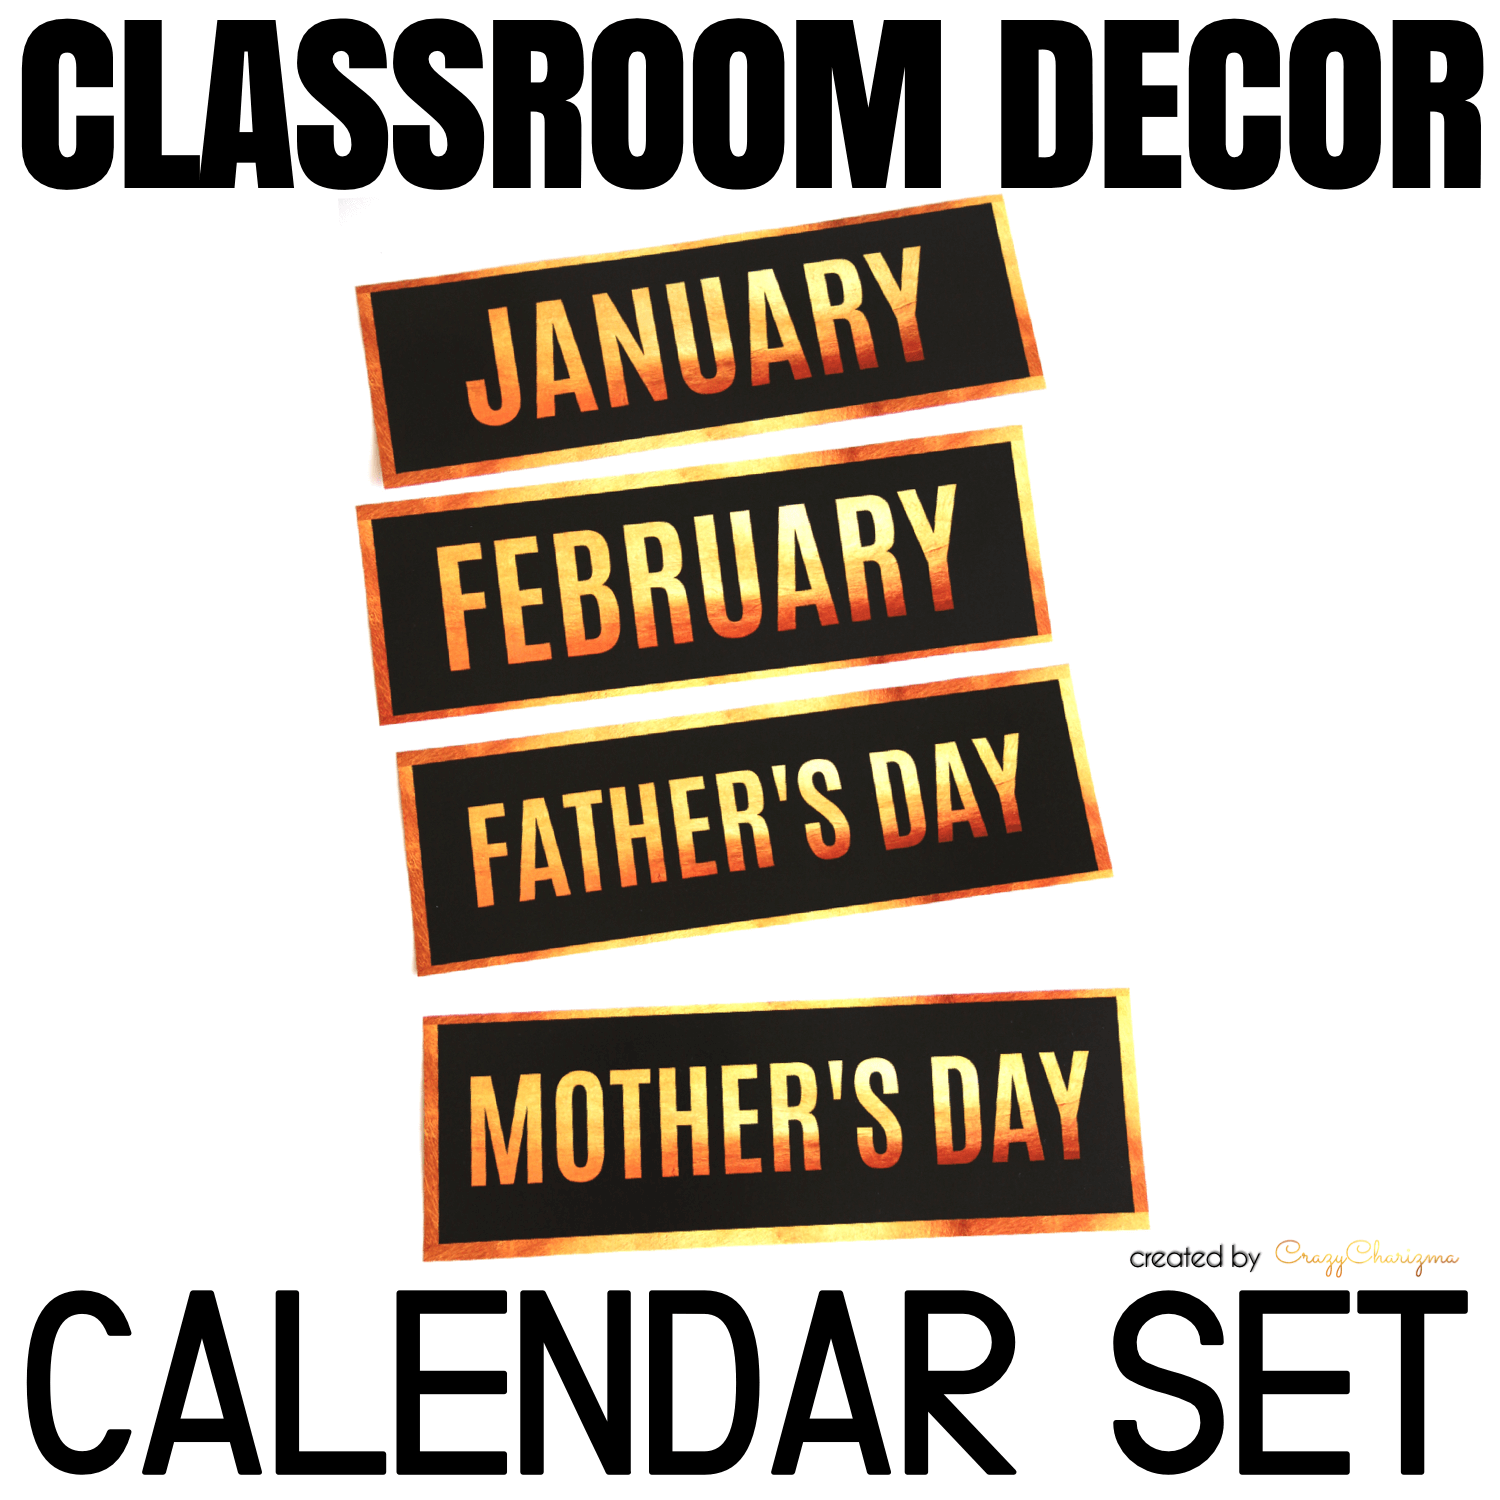 Decorate your classroom this year with this stylish BLACK and GOLD decor set. Find inside vibrant and bright Calendar Set: months, days of the week, numbers, holidays.